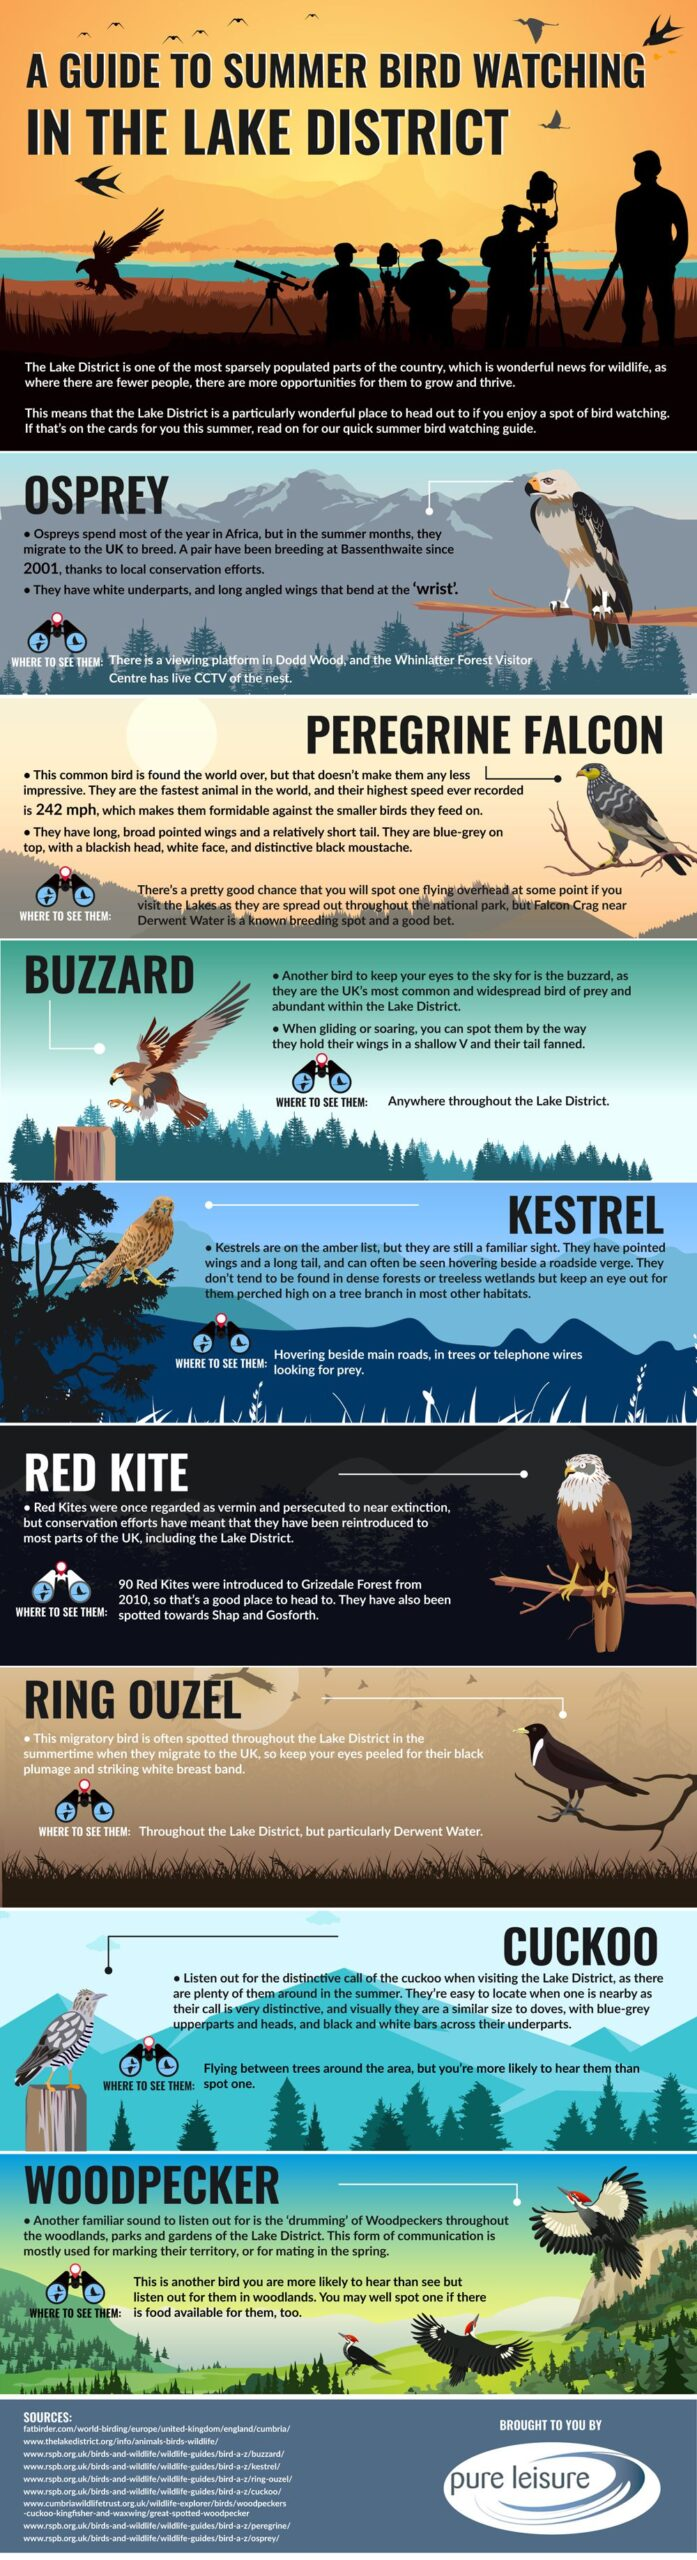 Lake District Bird Watching, an infographic by Pure Leisure